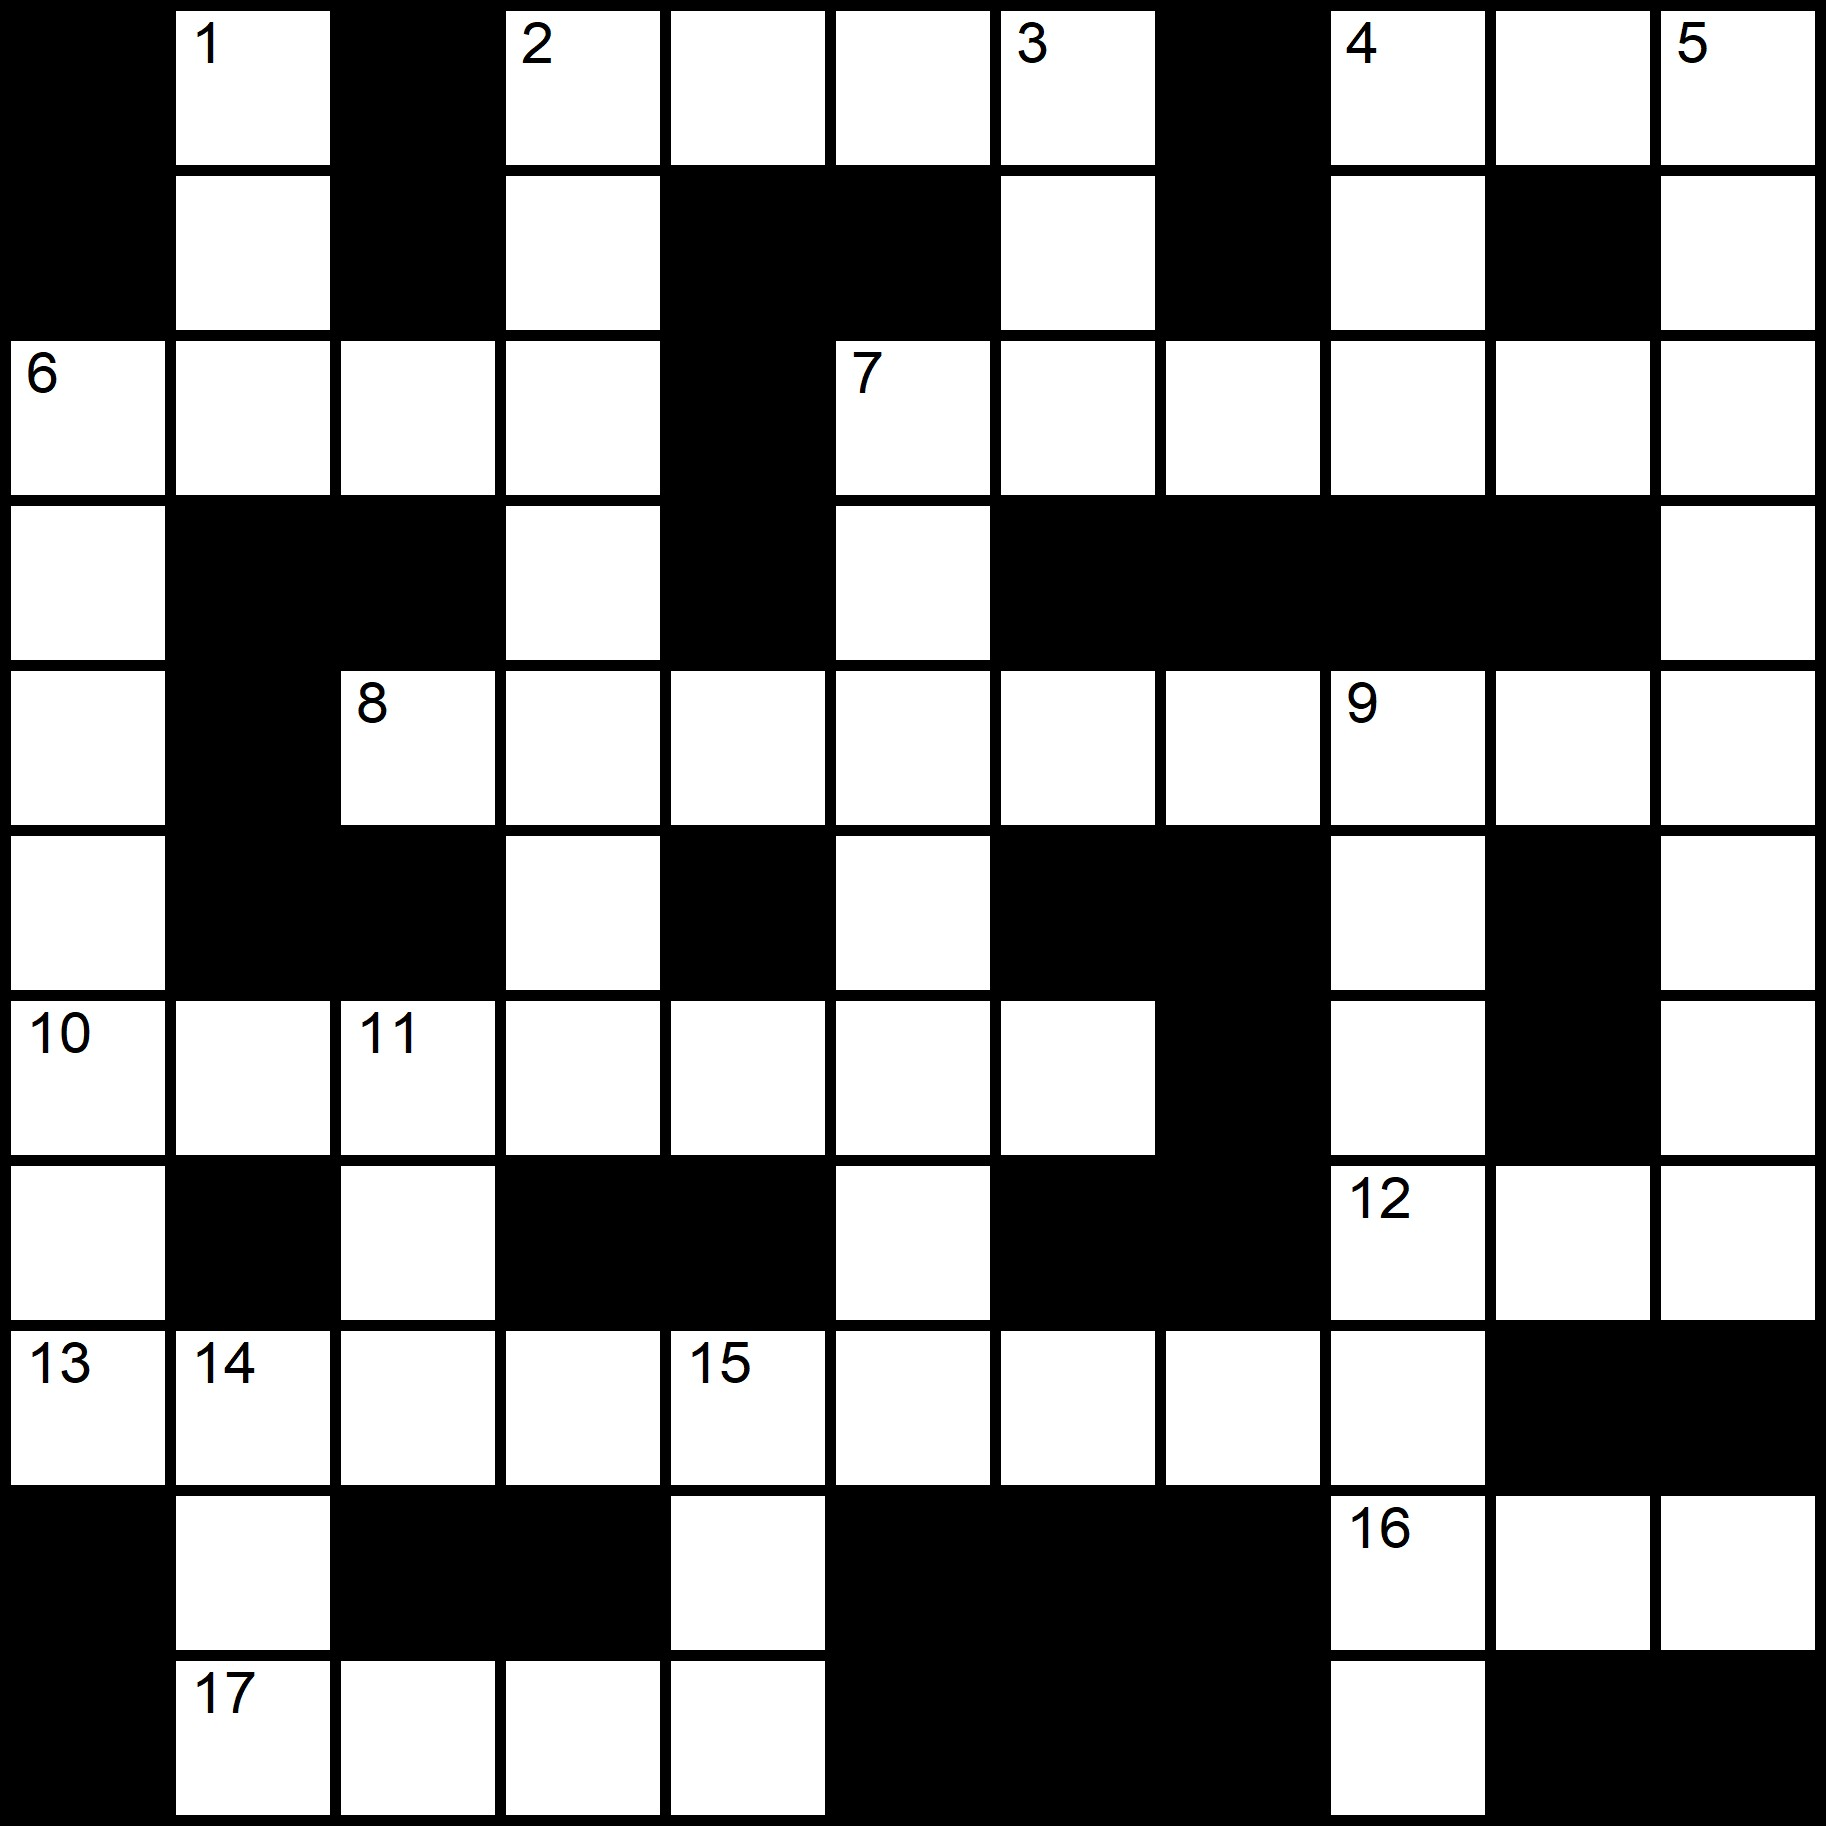 Online Indy Crosswords - Placidus Flora - Crossword number twenty